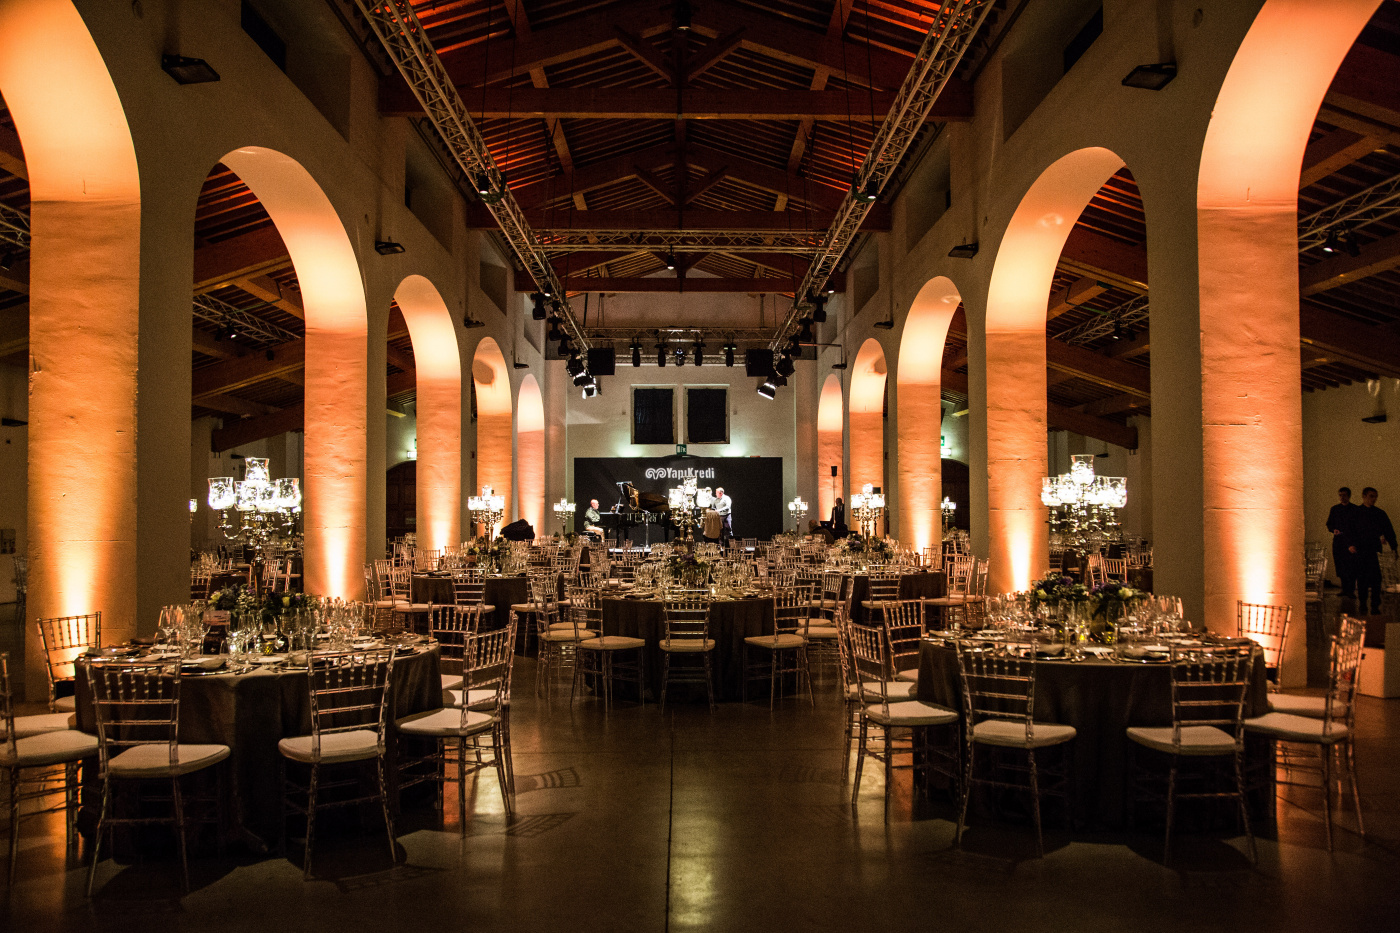 Event in Florence for a turkish bank with round tables and candelabras